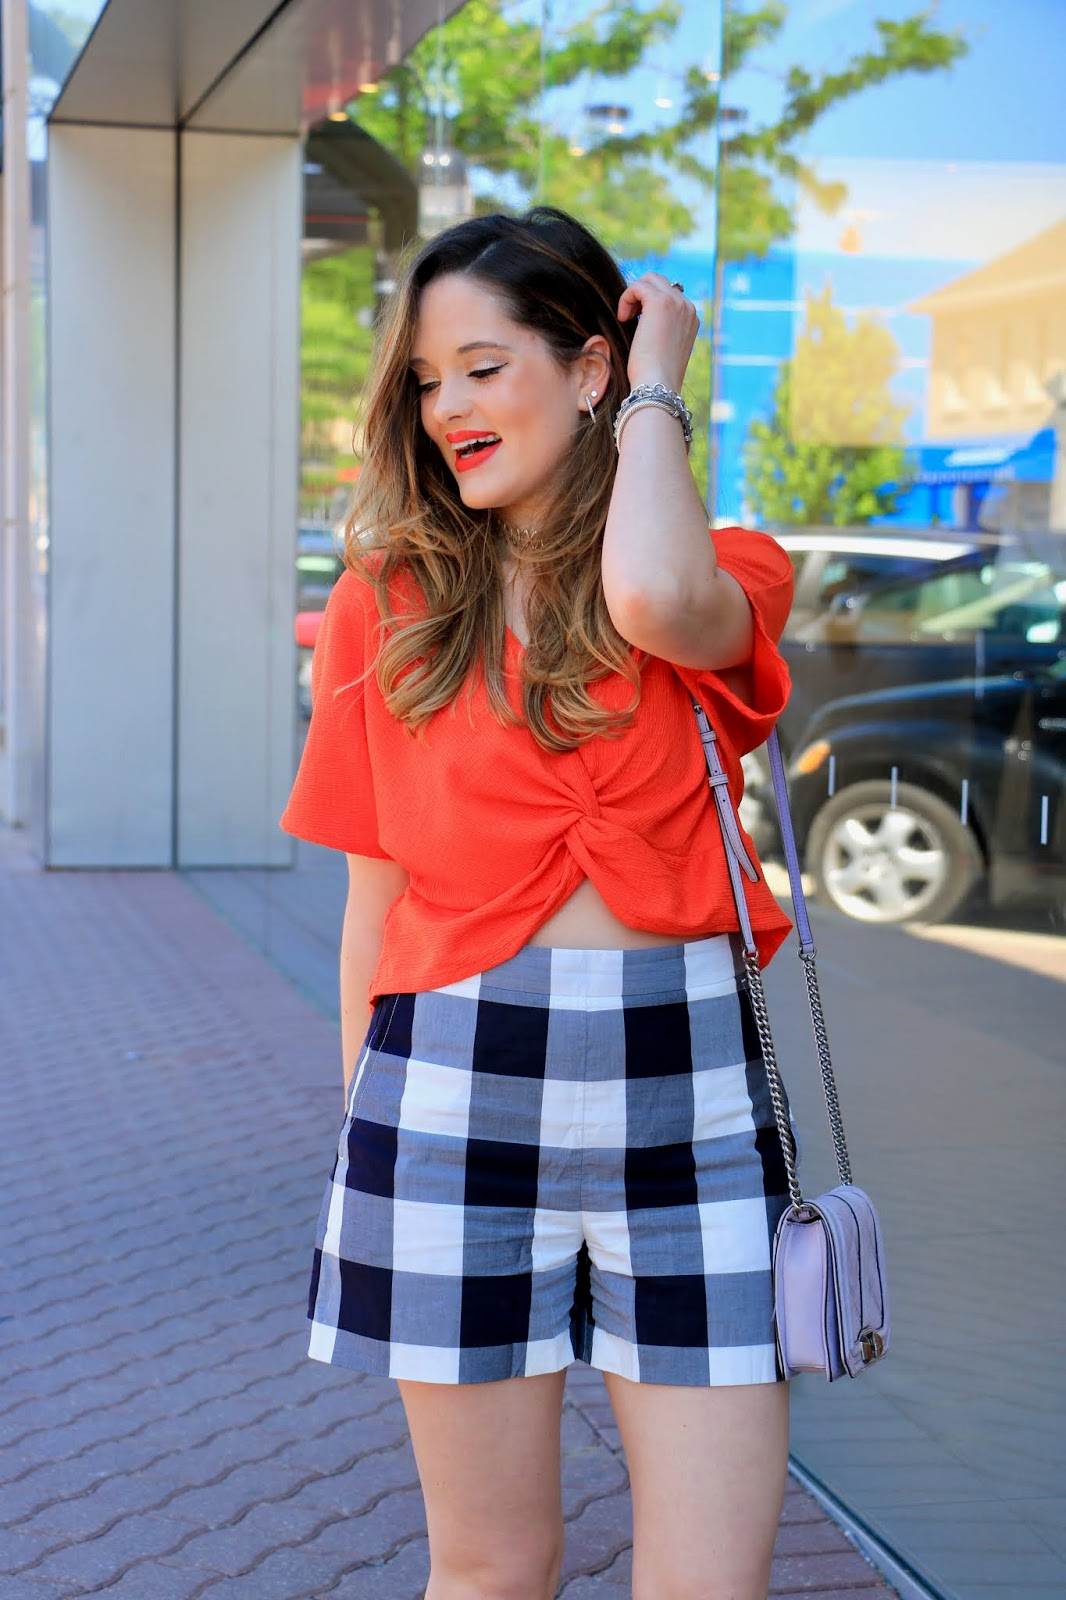 Nyc fashion blogger of Kat's Fashion Fix, Kathleen Harper, wearing an orange twist crop top from Zara in 2018